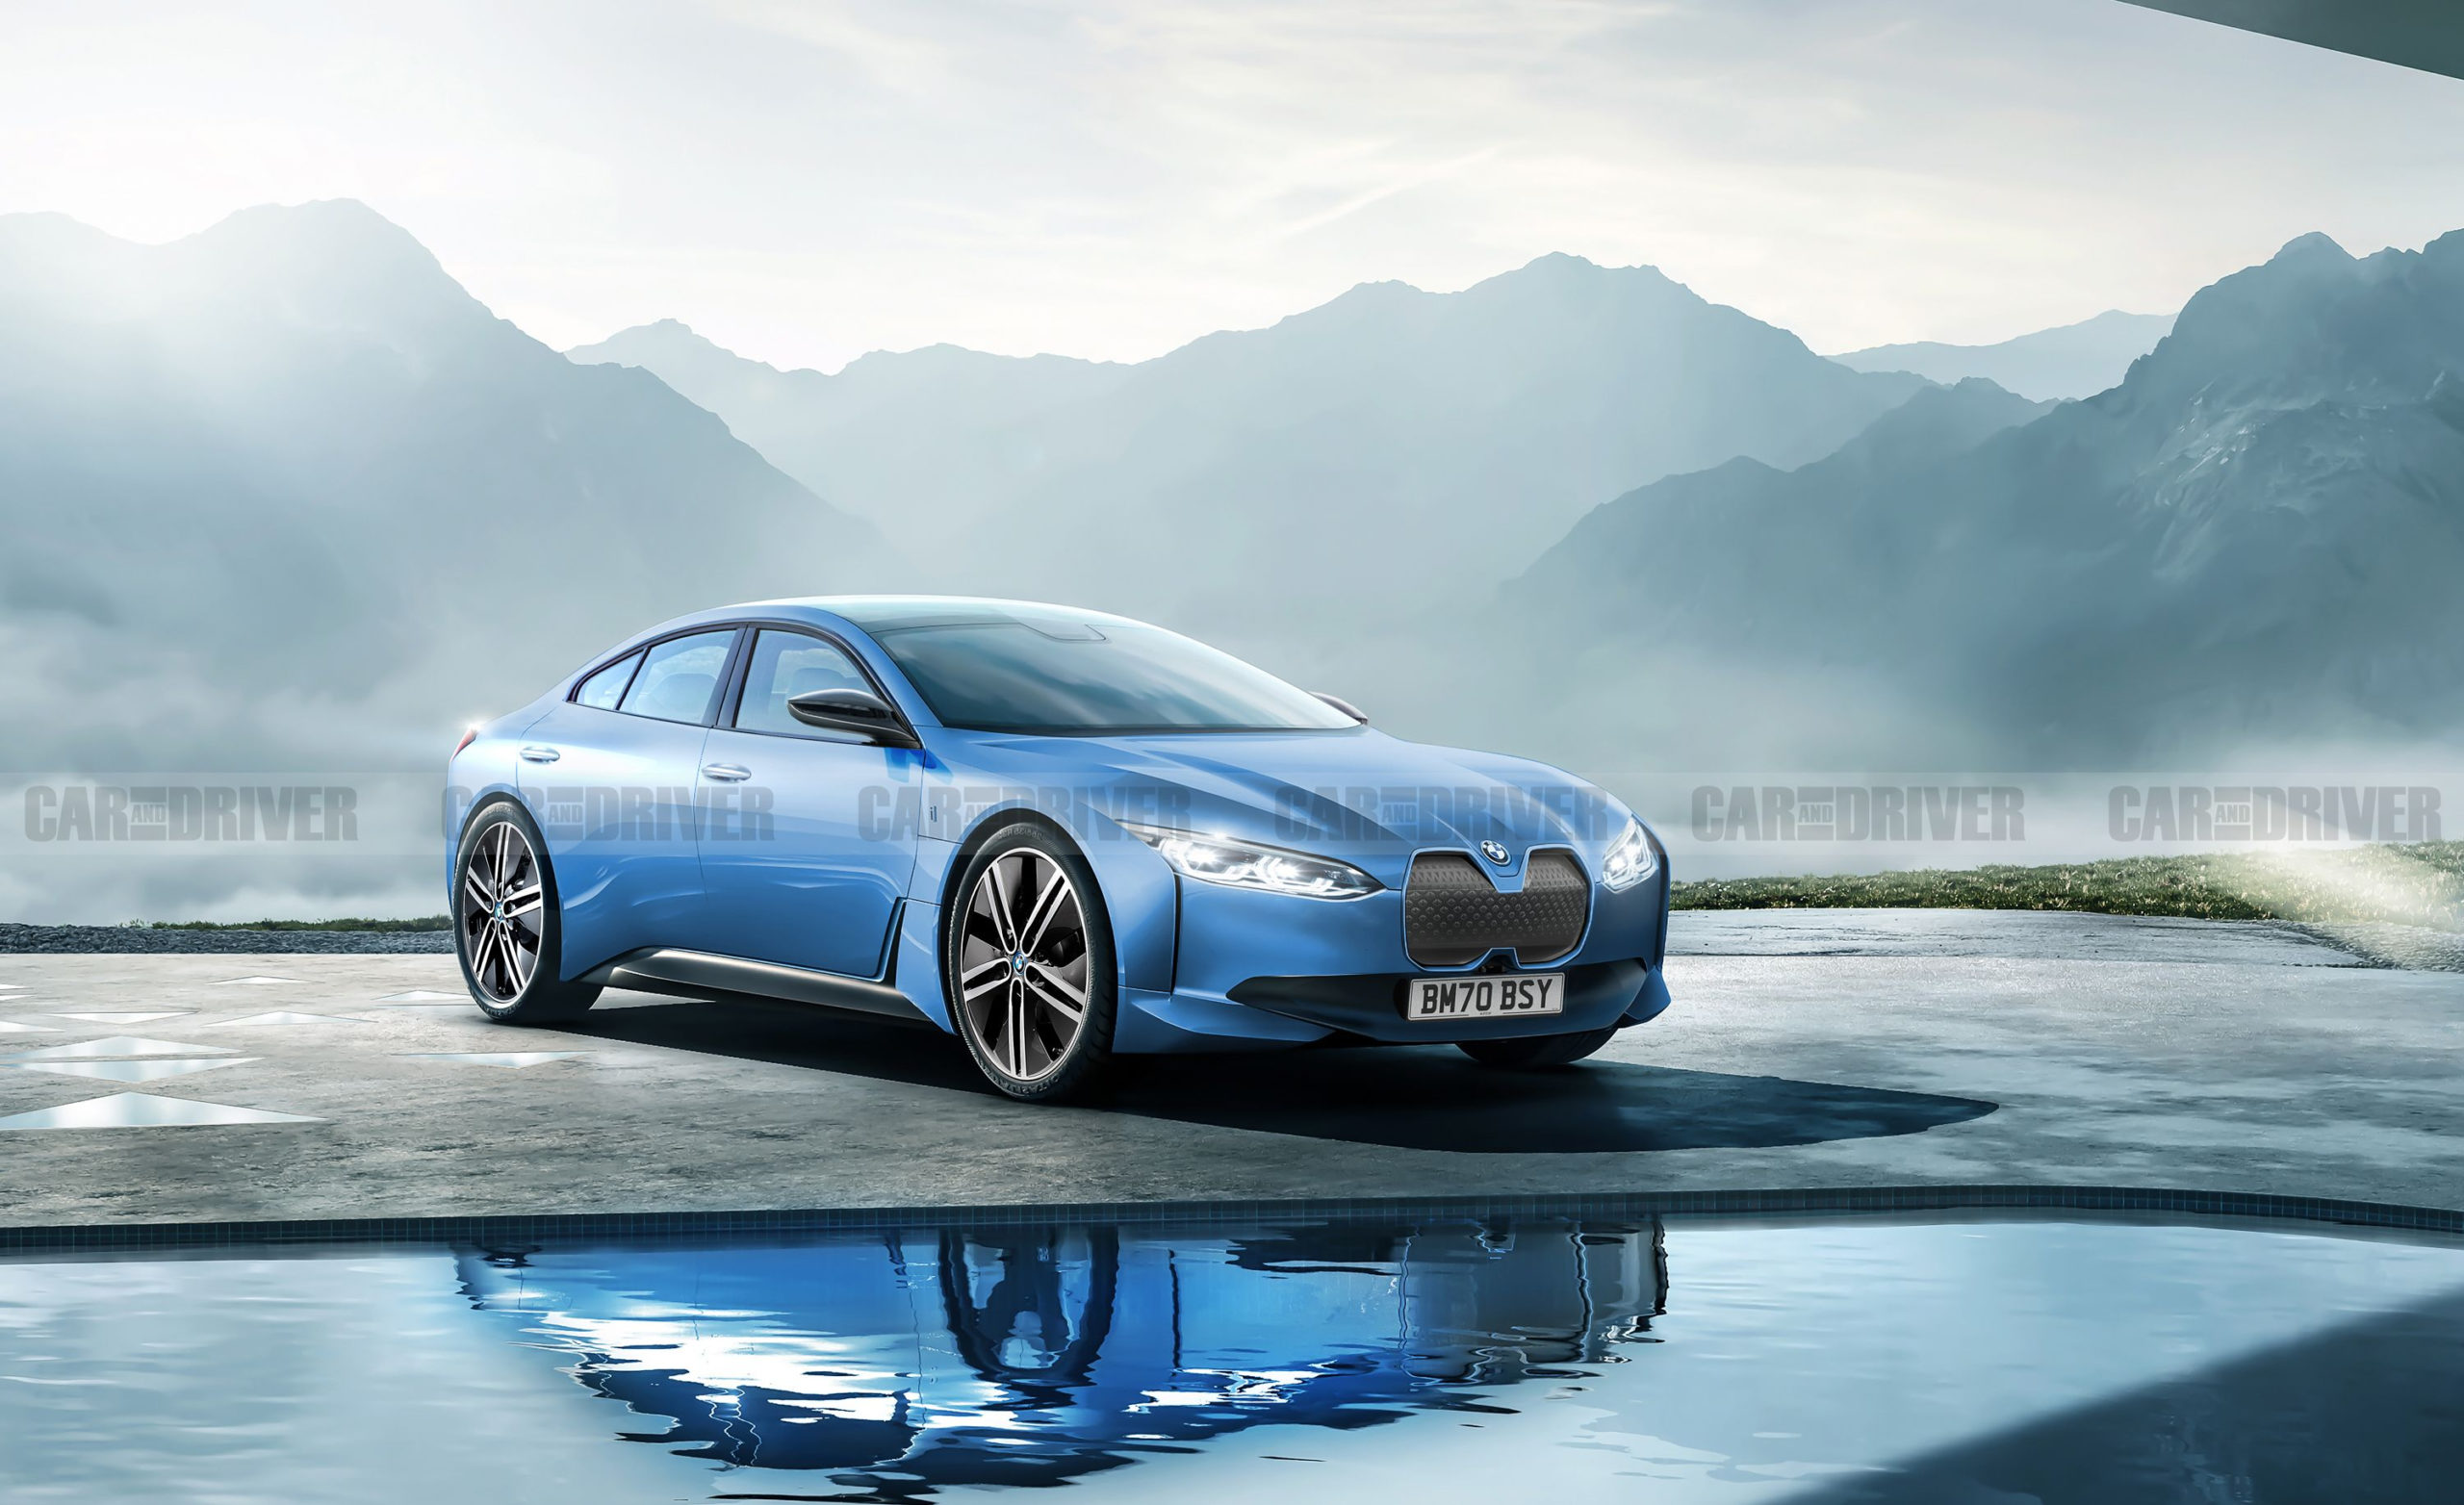 2022 BMW i4 – New Electric Sports Sedan